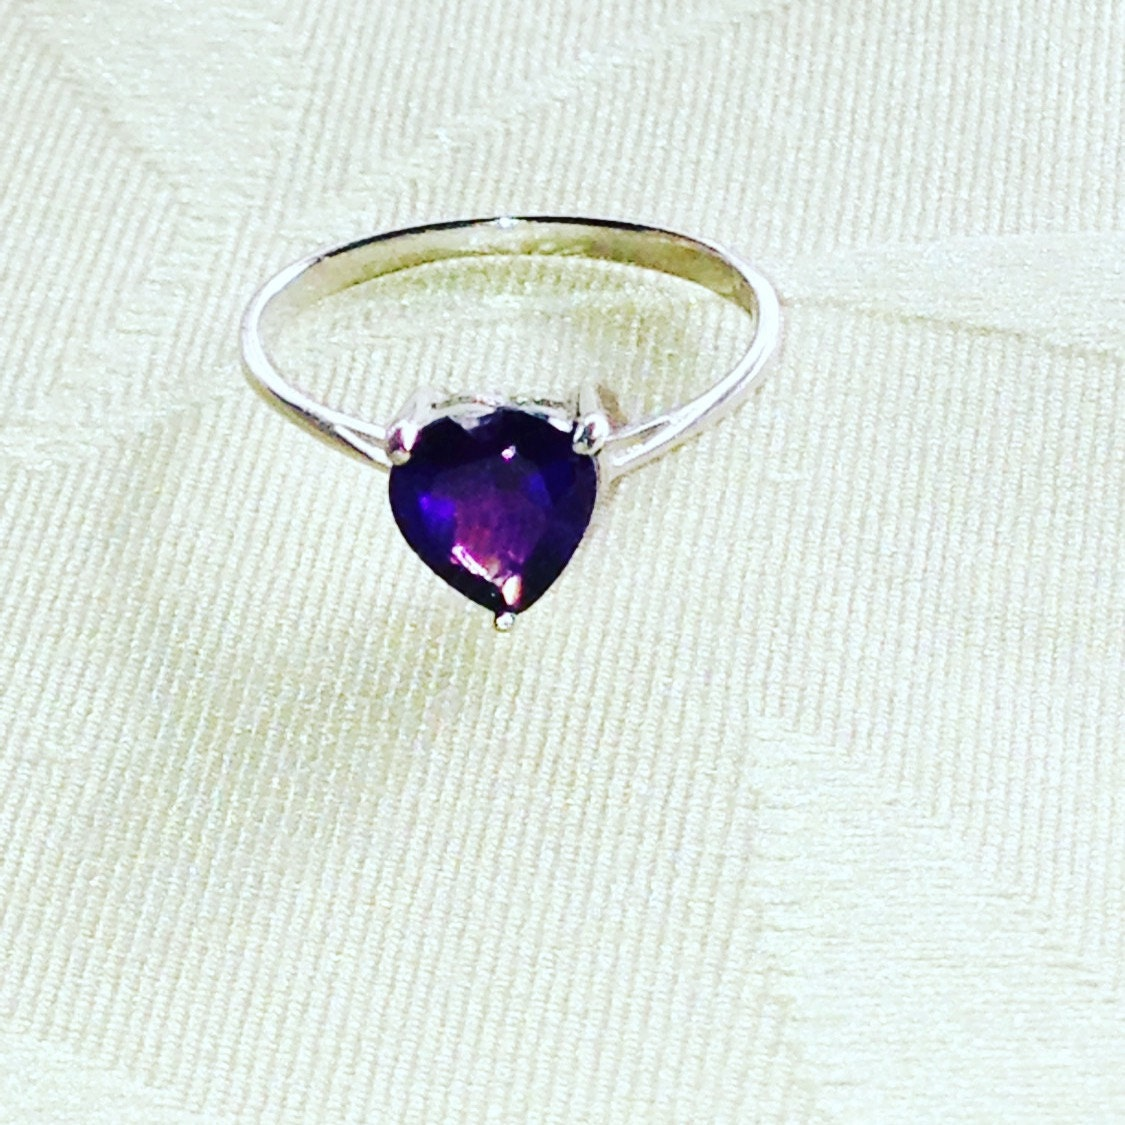 amethyst purple heart ring solitaire february birthstone. Black Bedroom Furniture Sets. Home Design Ideas